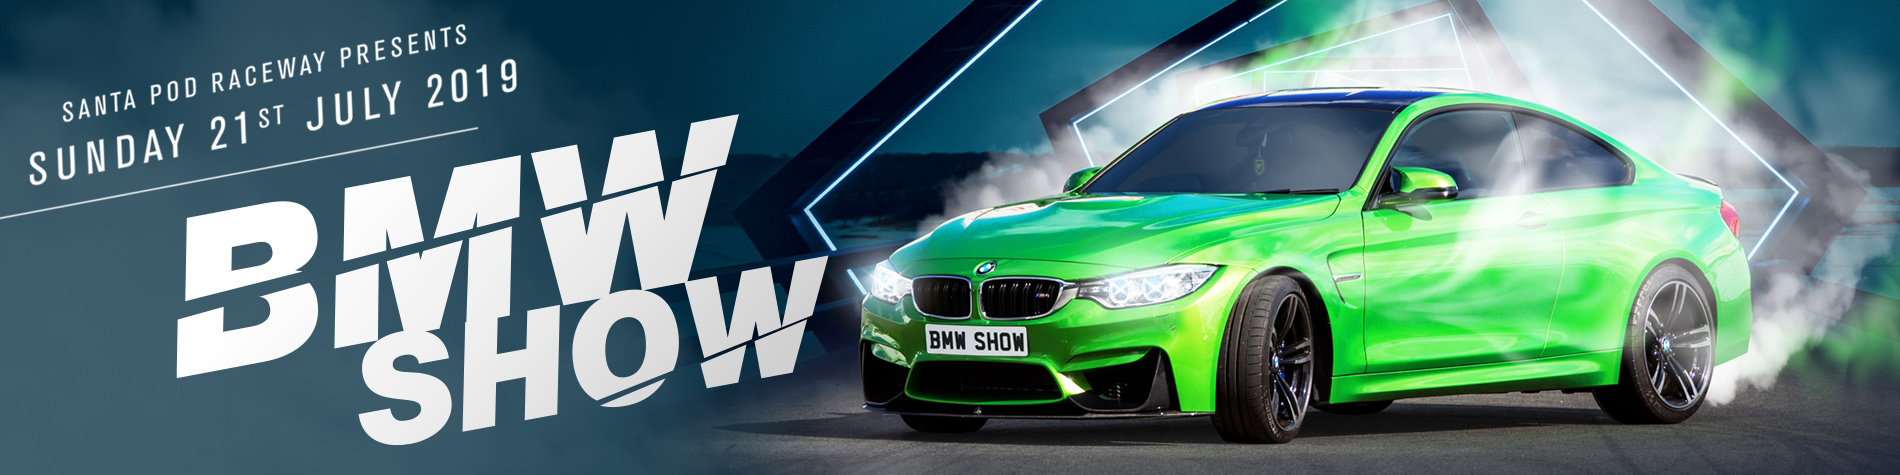 Bmw Show Tickets